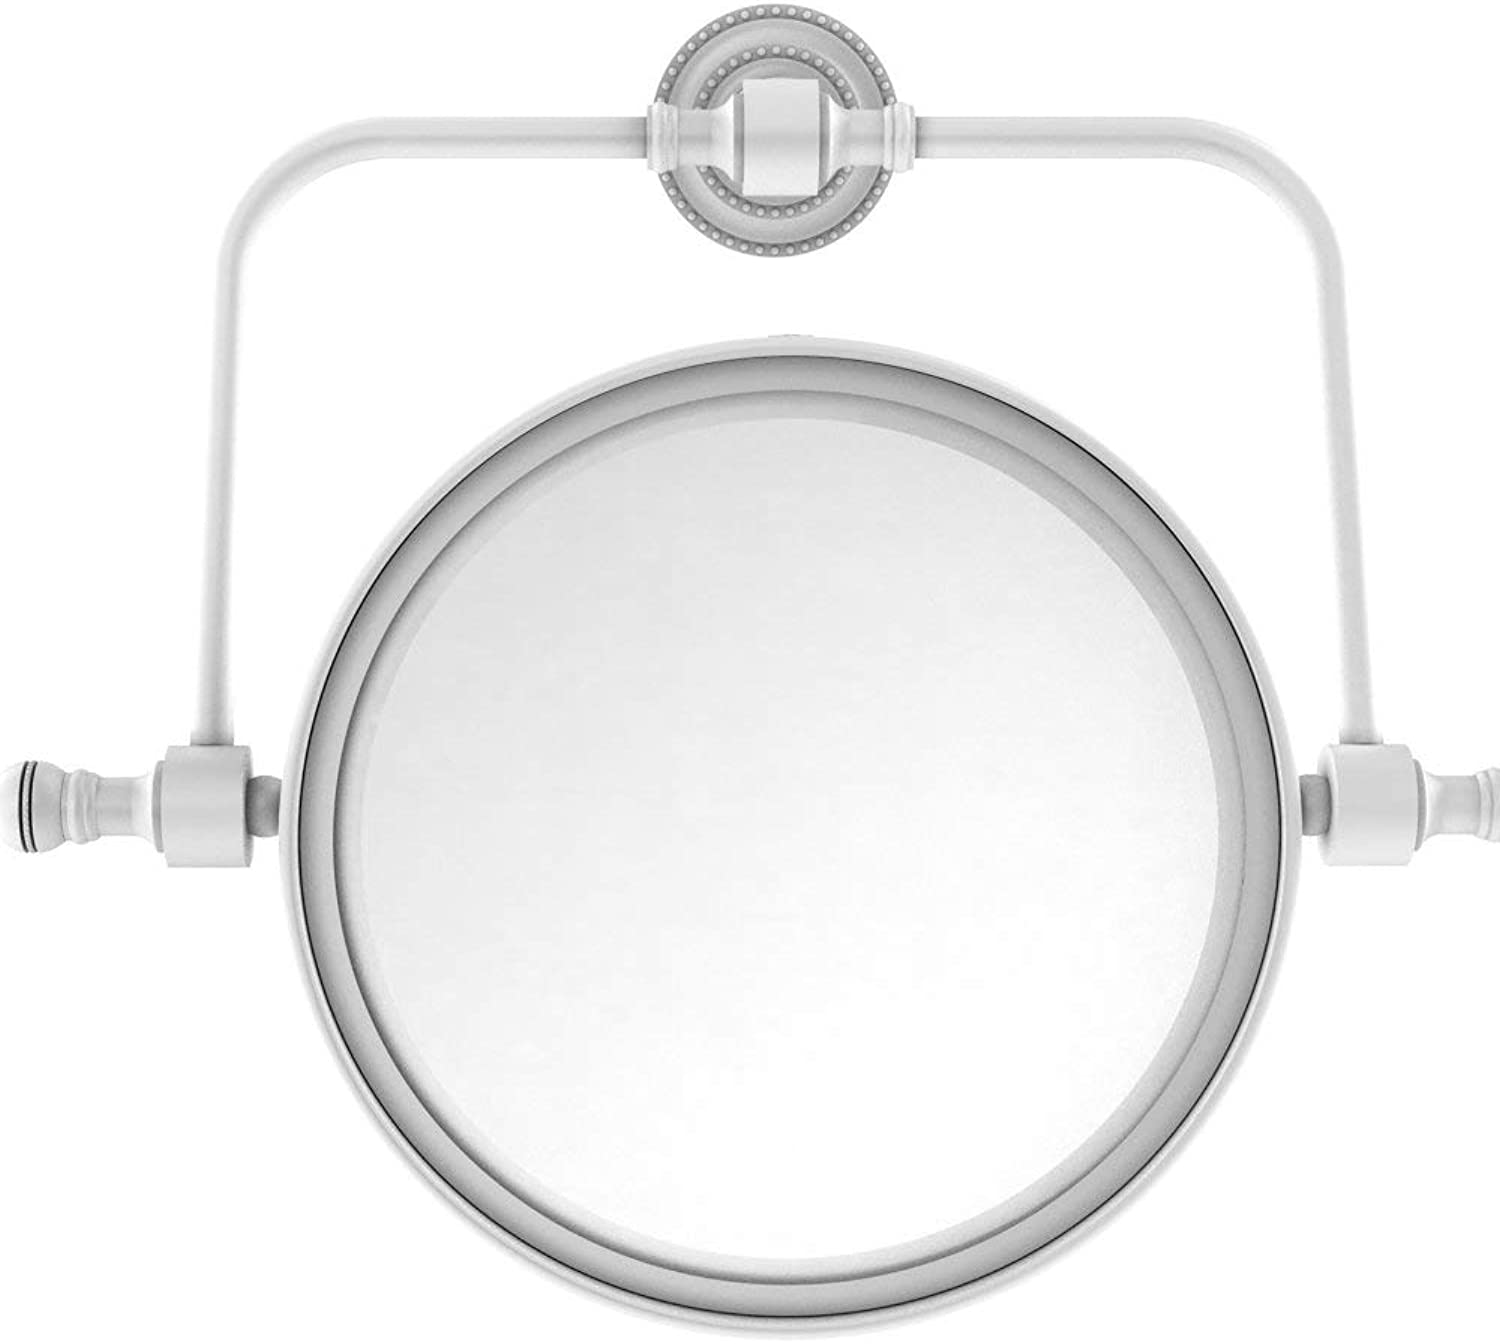 Allied Brass Retro Dot Collection Wall Mounted Swivel Make-Up Mirror 8 Inch Diameter with 4X Magnification, RDM-4 4X-WHM